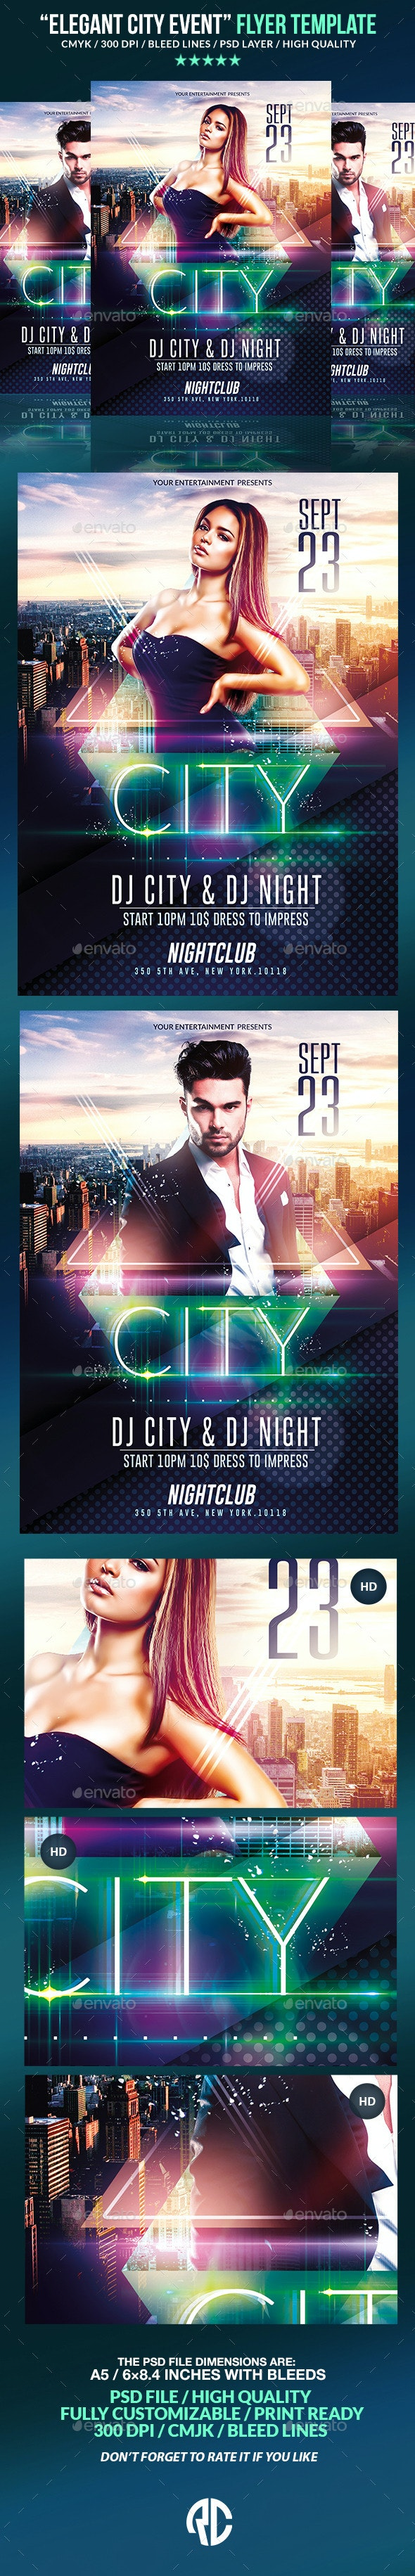 Elegant City Event   Psd Flyer Template  - Clubs & Parties Events